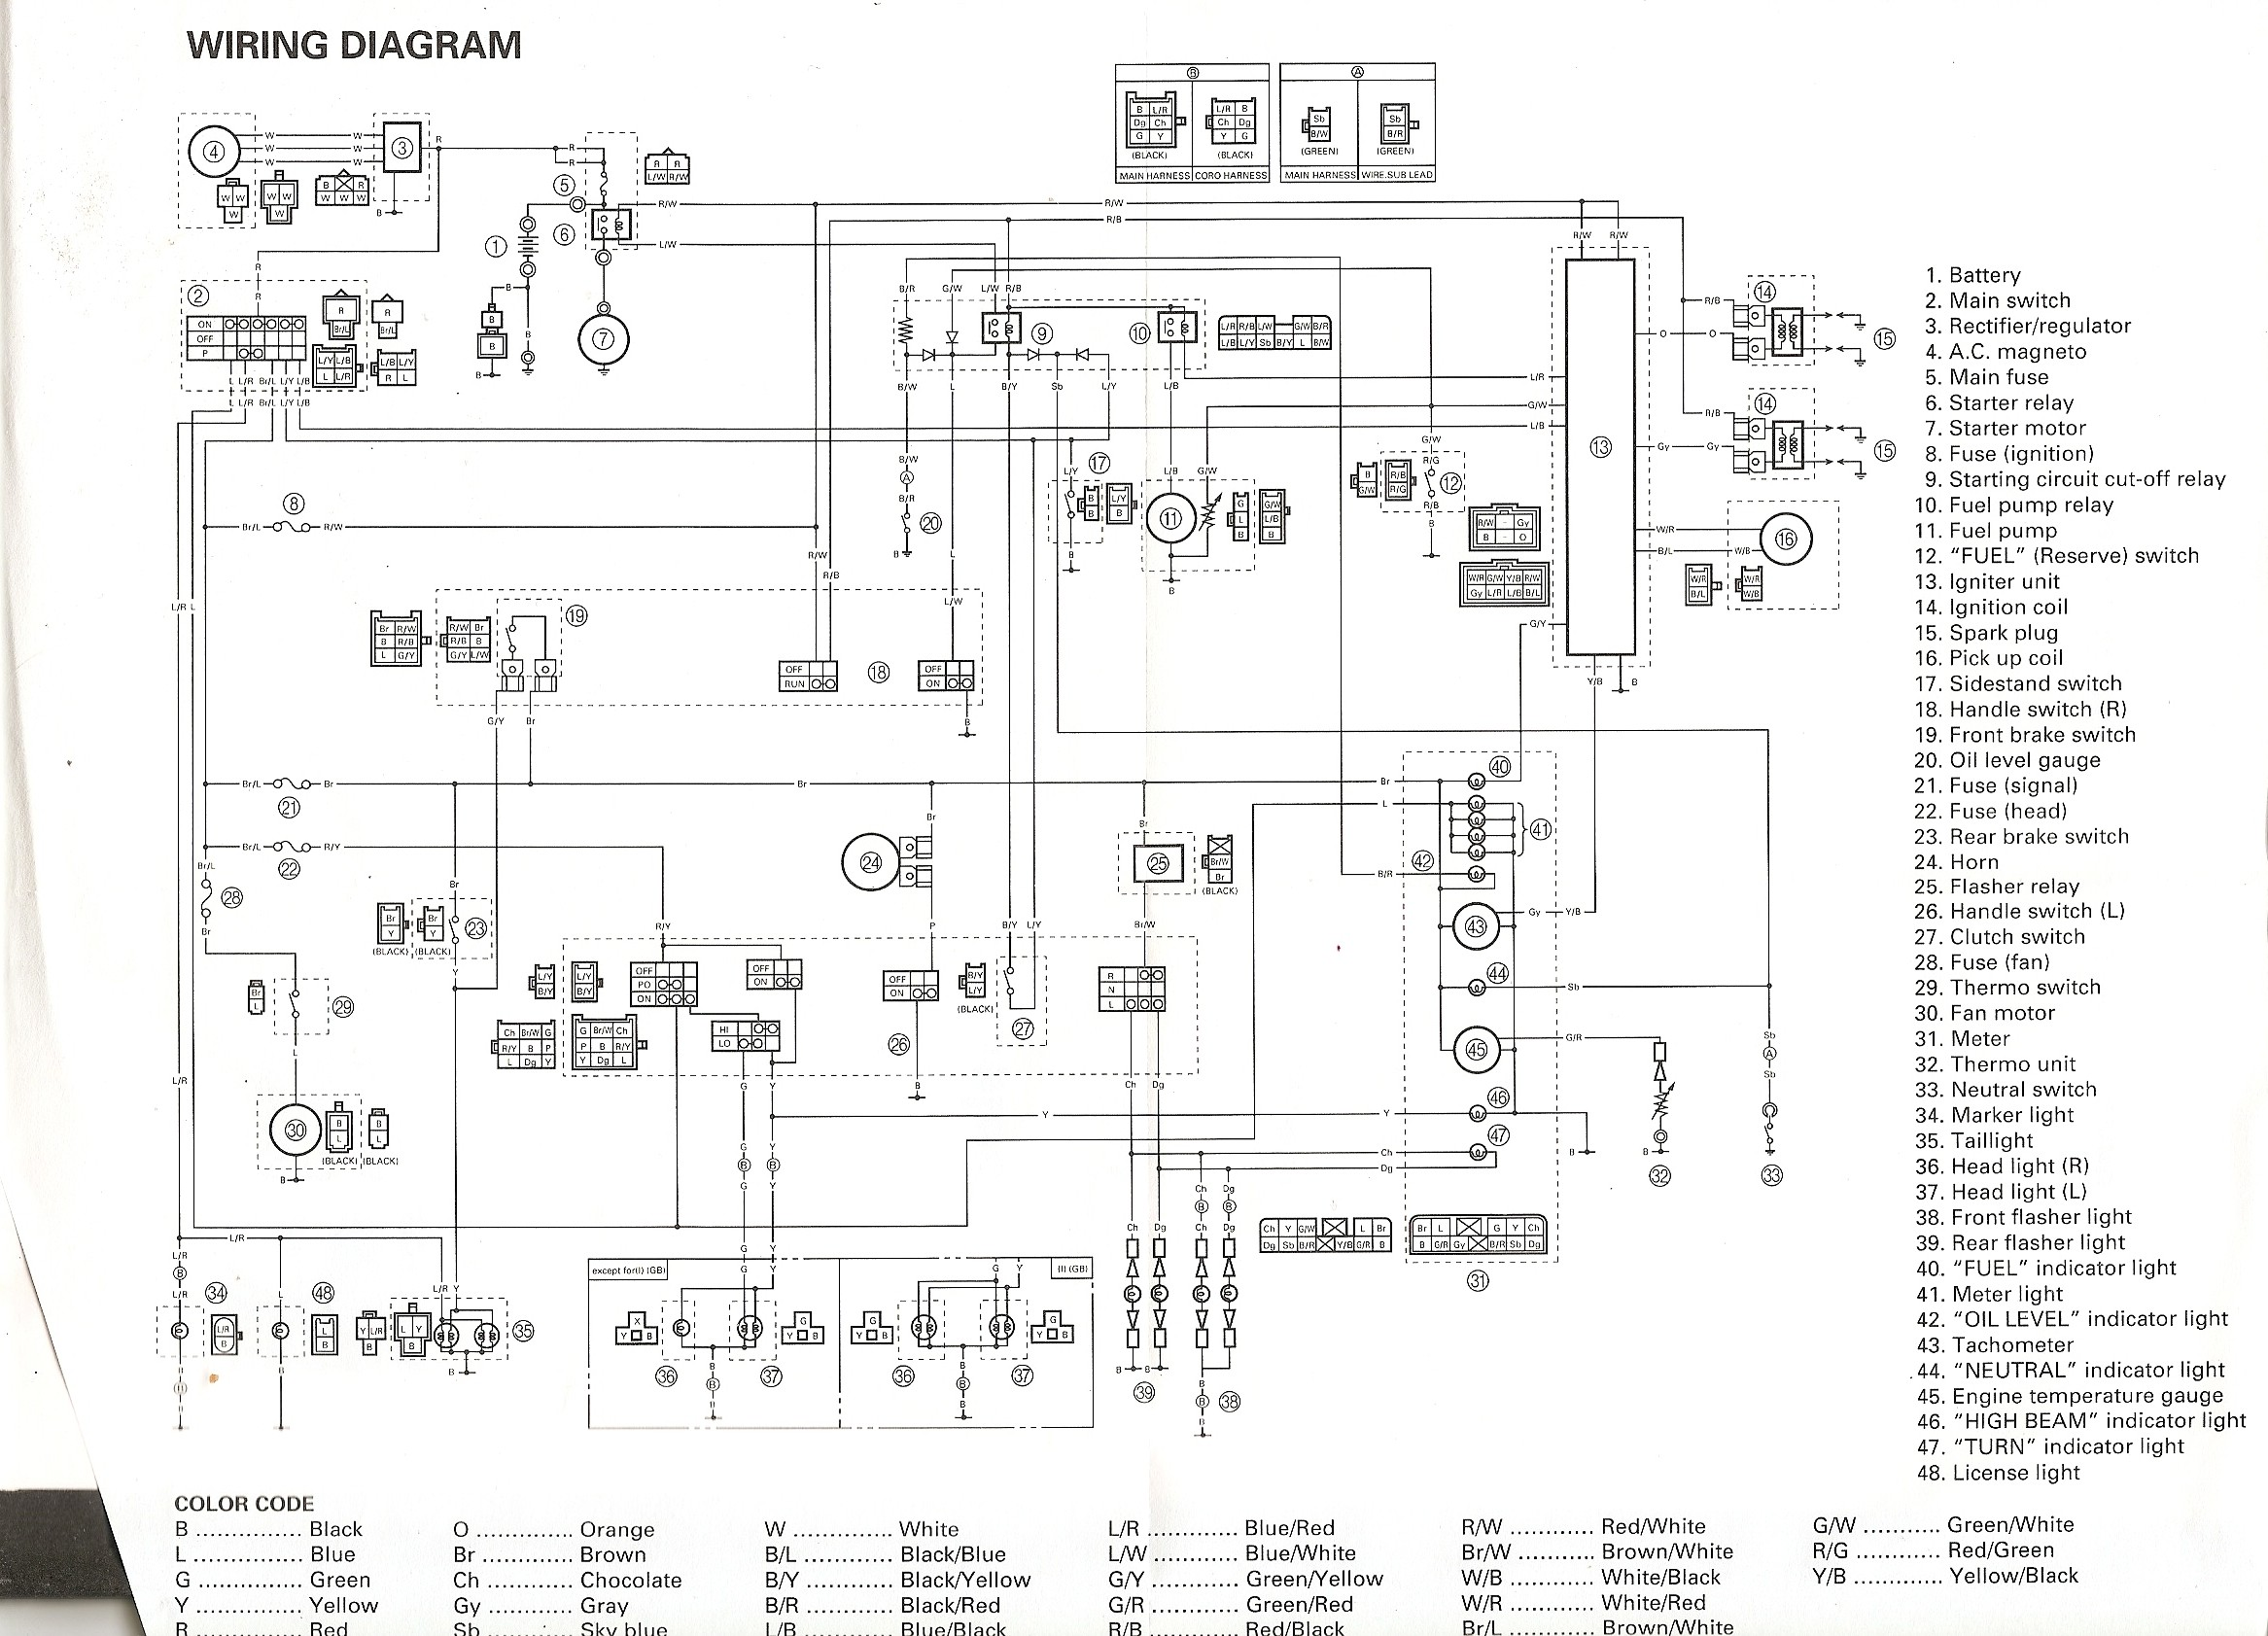 yamaha fzr 600 engine diagram. yamaha. free wiring diagrams, Wiring diagram